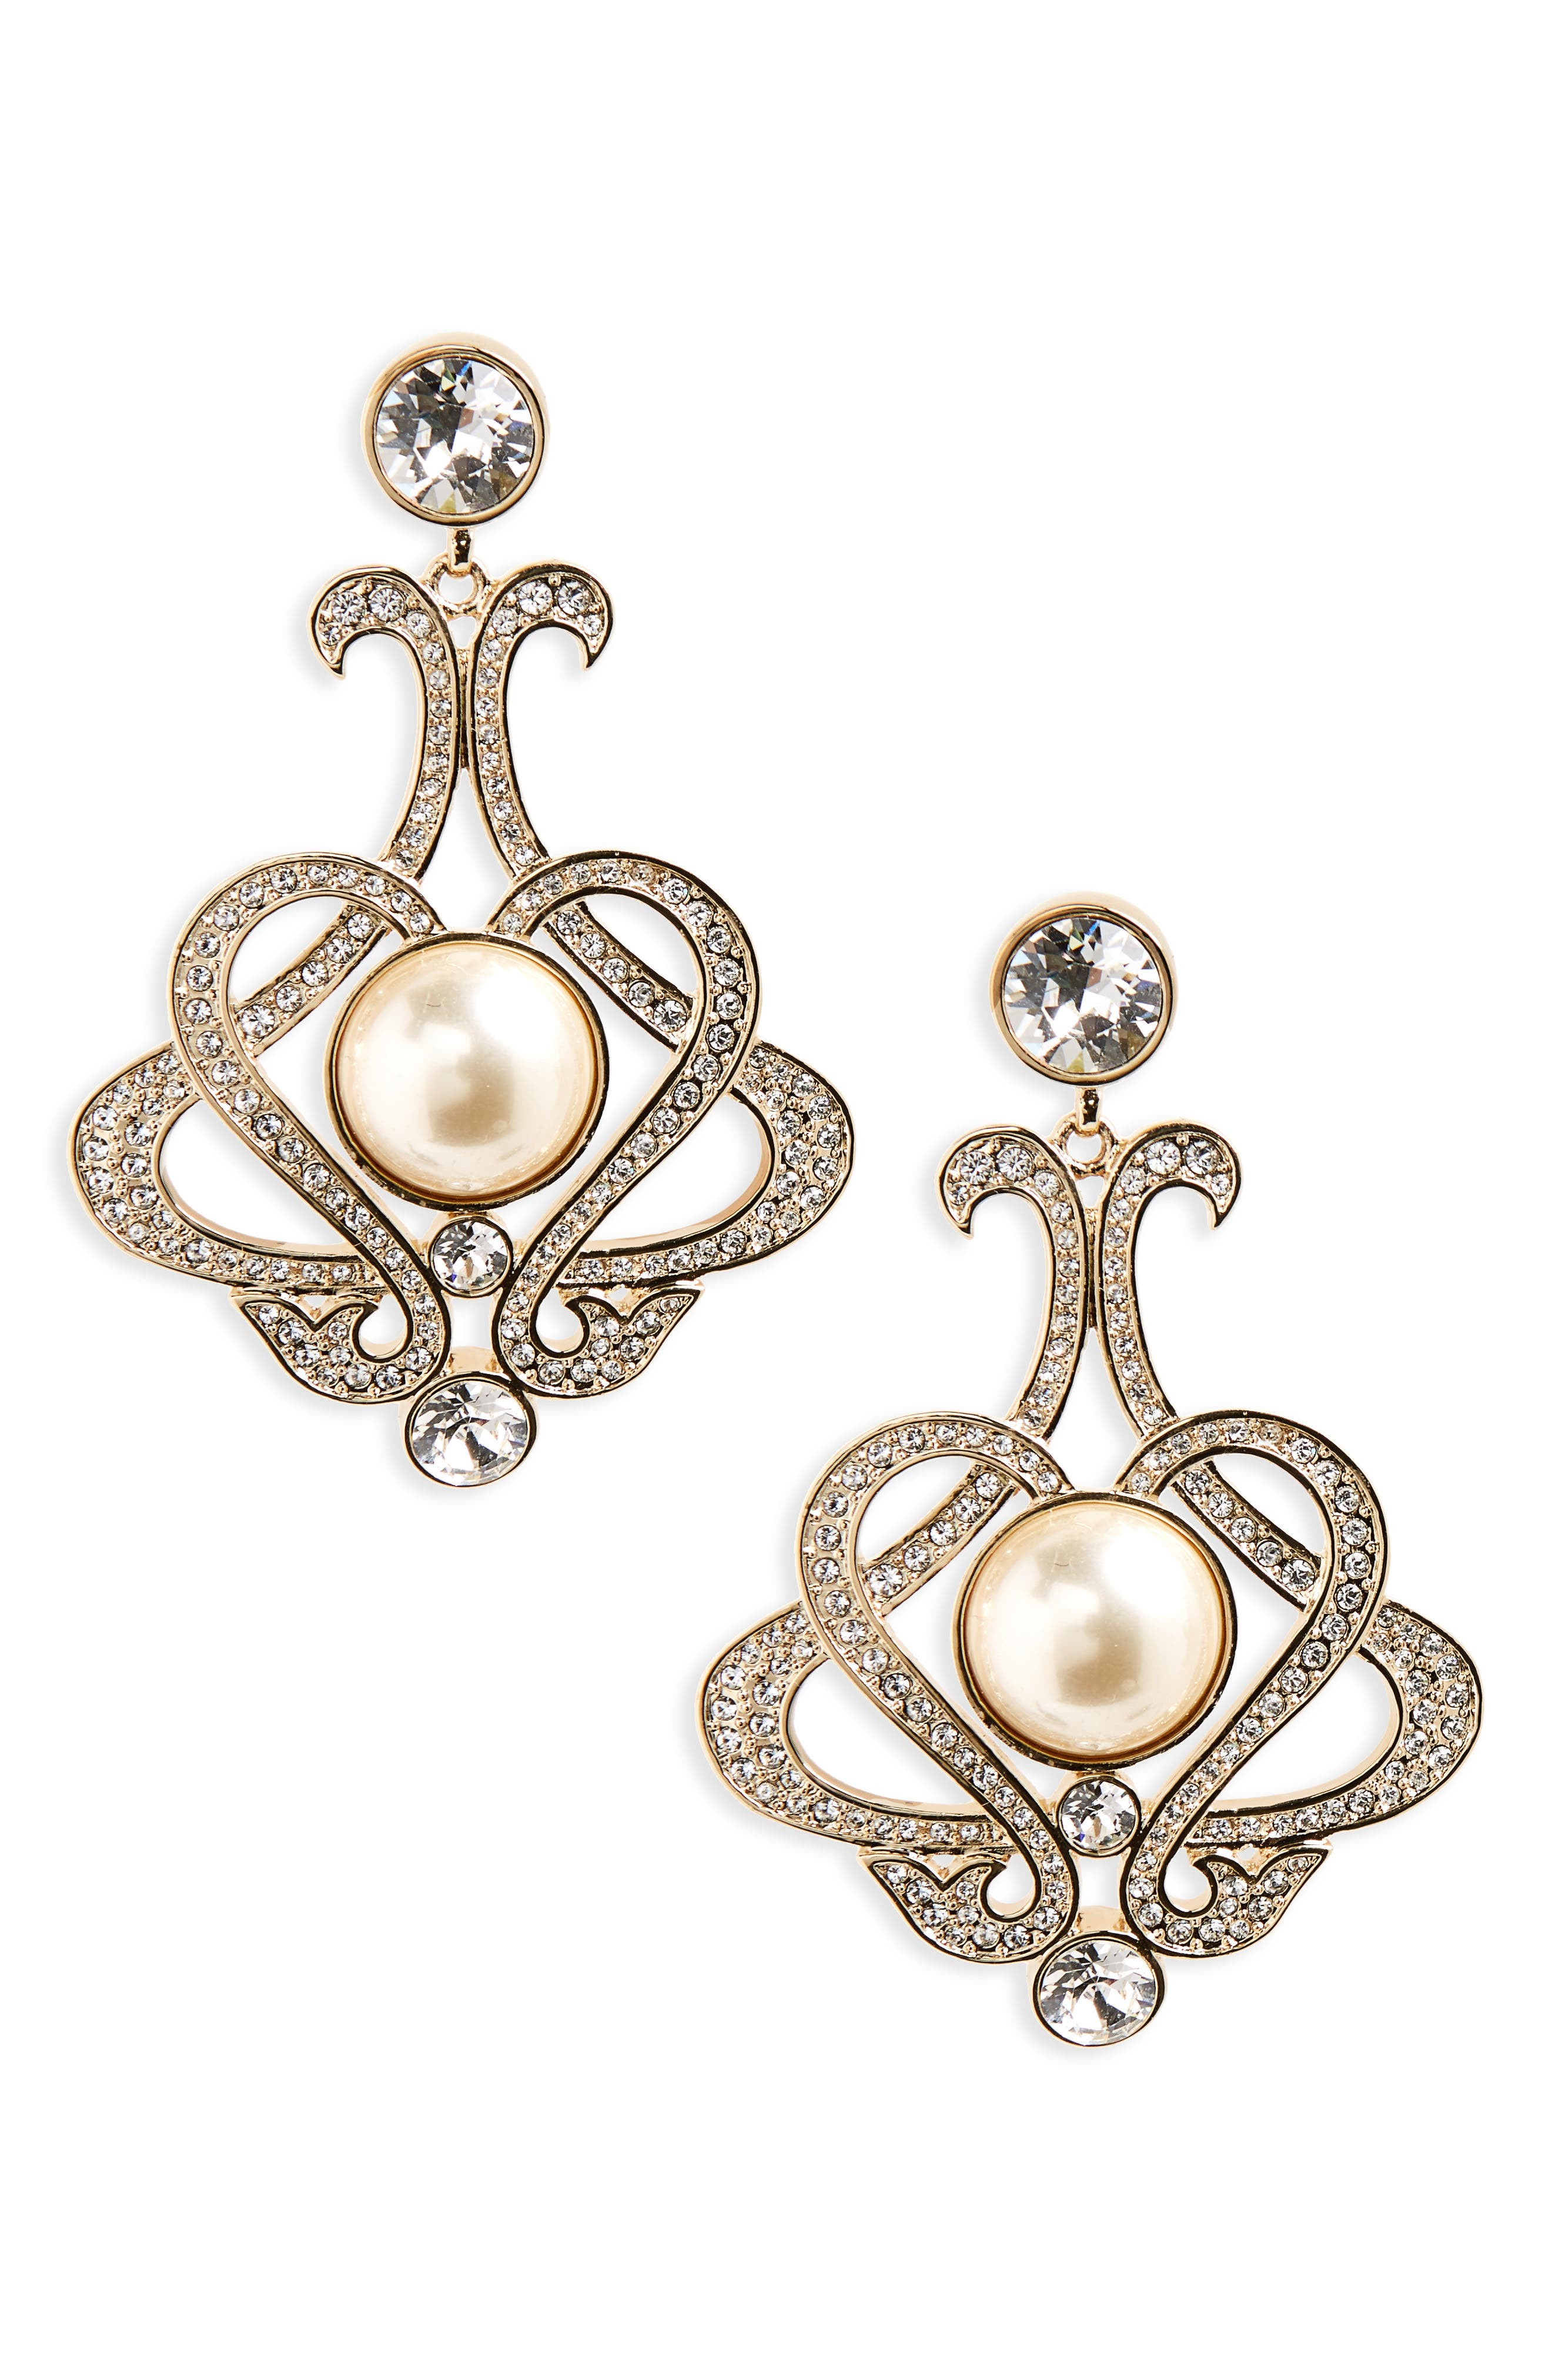 Swarovski Crystal & Imitation Pearl Chandelier Earrings,                         Main,                         color, Ivory Pearl / Gold